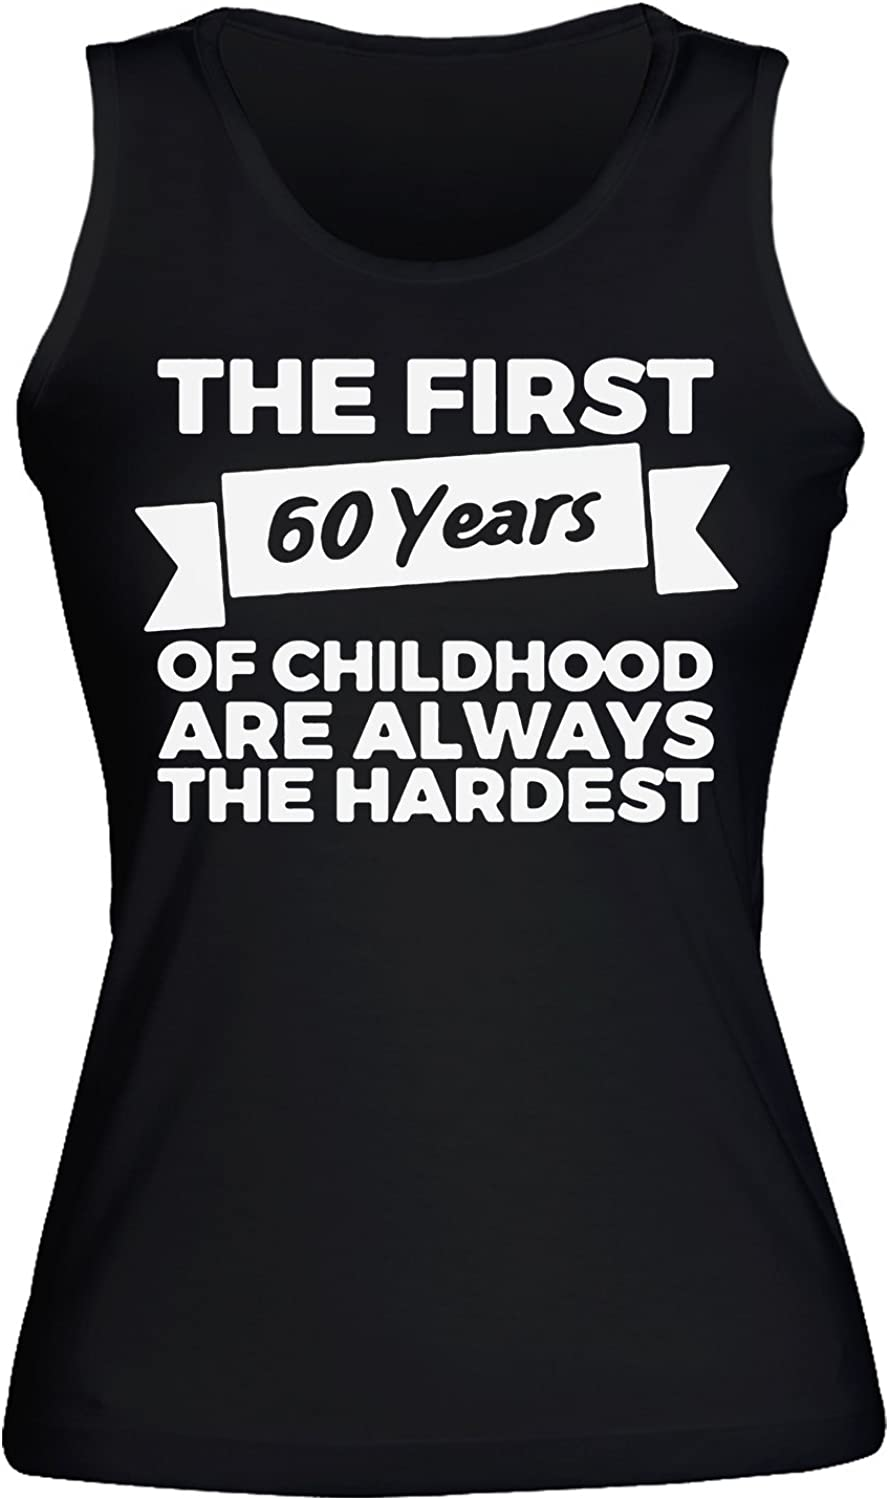 The First 60 Years Of Childhood Are The Hardest Women's Tank Top Shirt